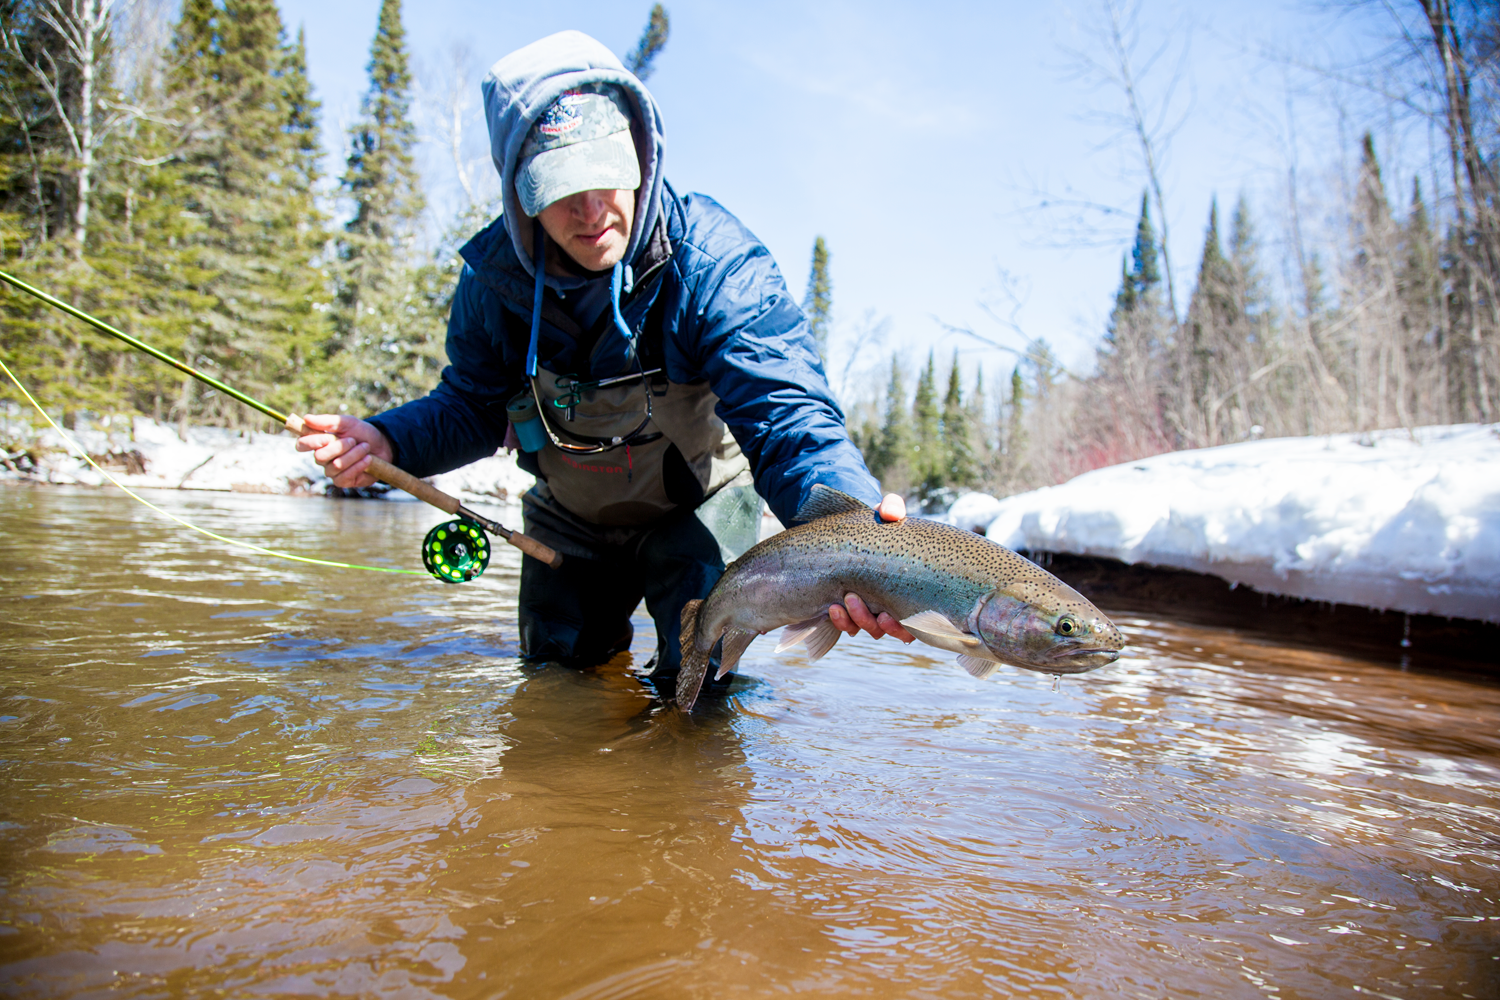 The Steelhead tribs open up soon and with most of our snowpack already gone, fishing should be good early this year.